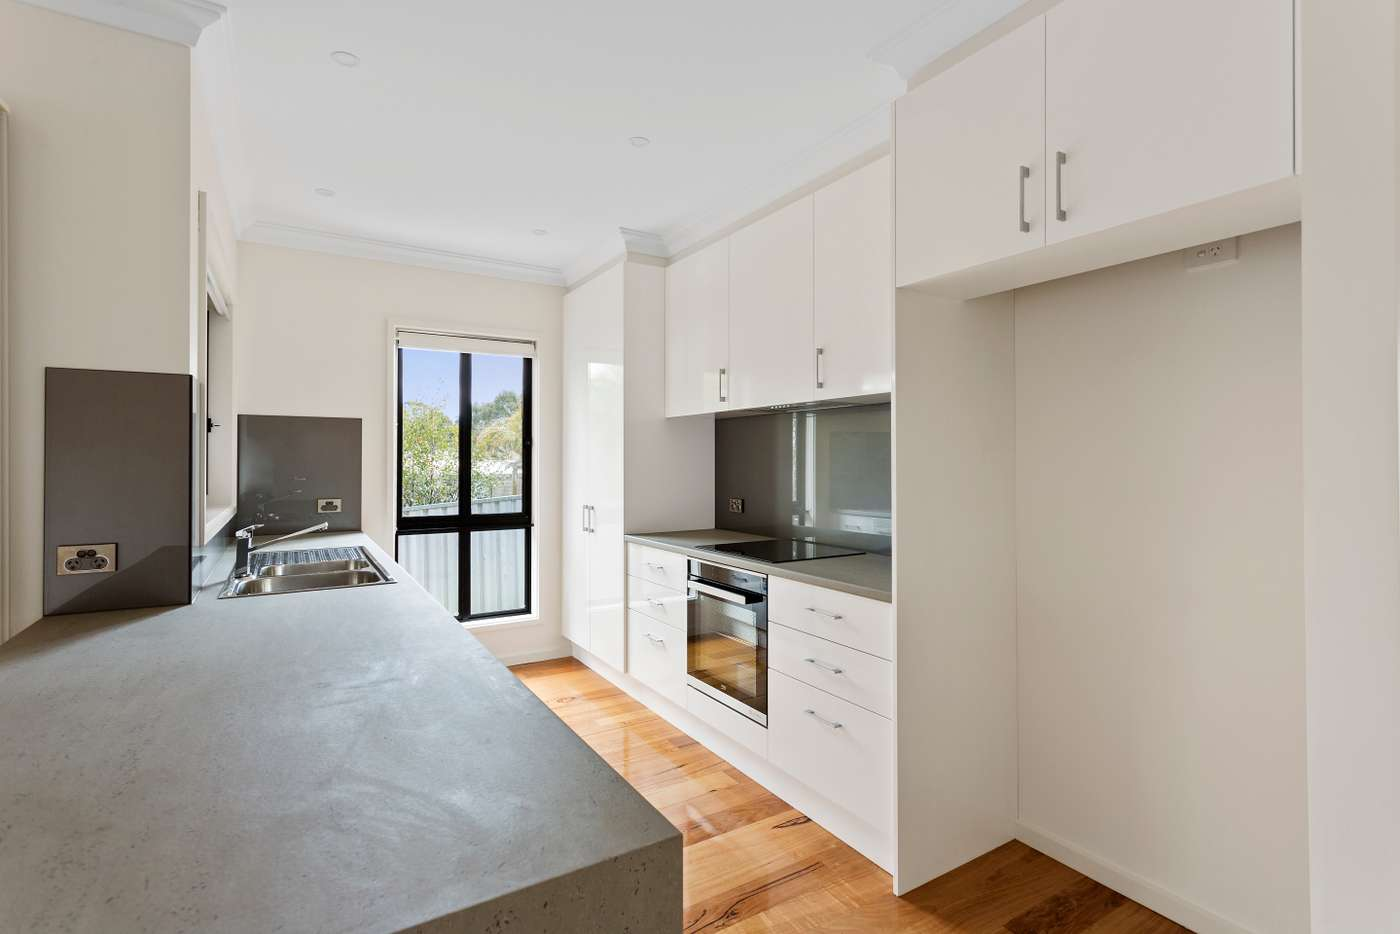 Fifth view of Homely unit listing, 2/245 Arnold Street, Bendigo VIC 3550